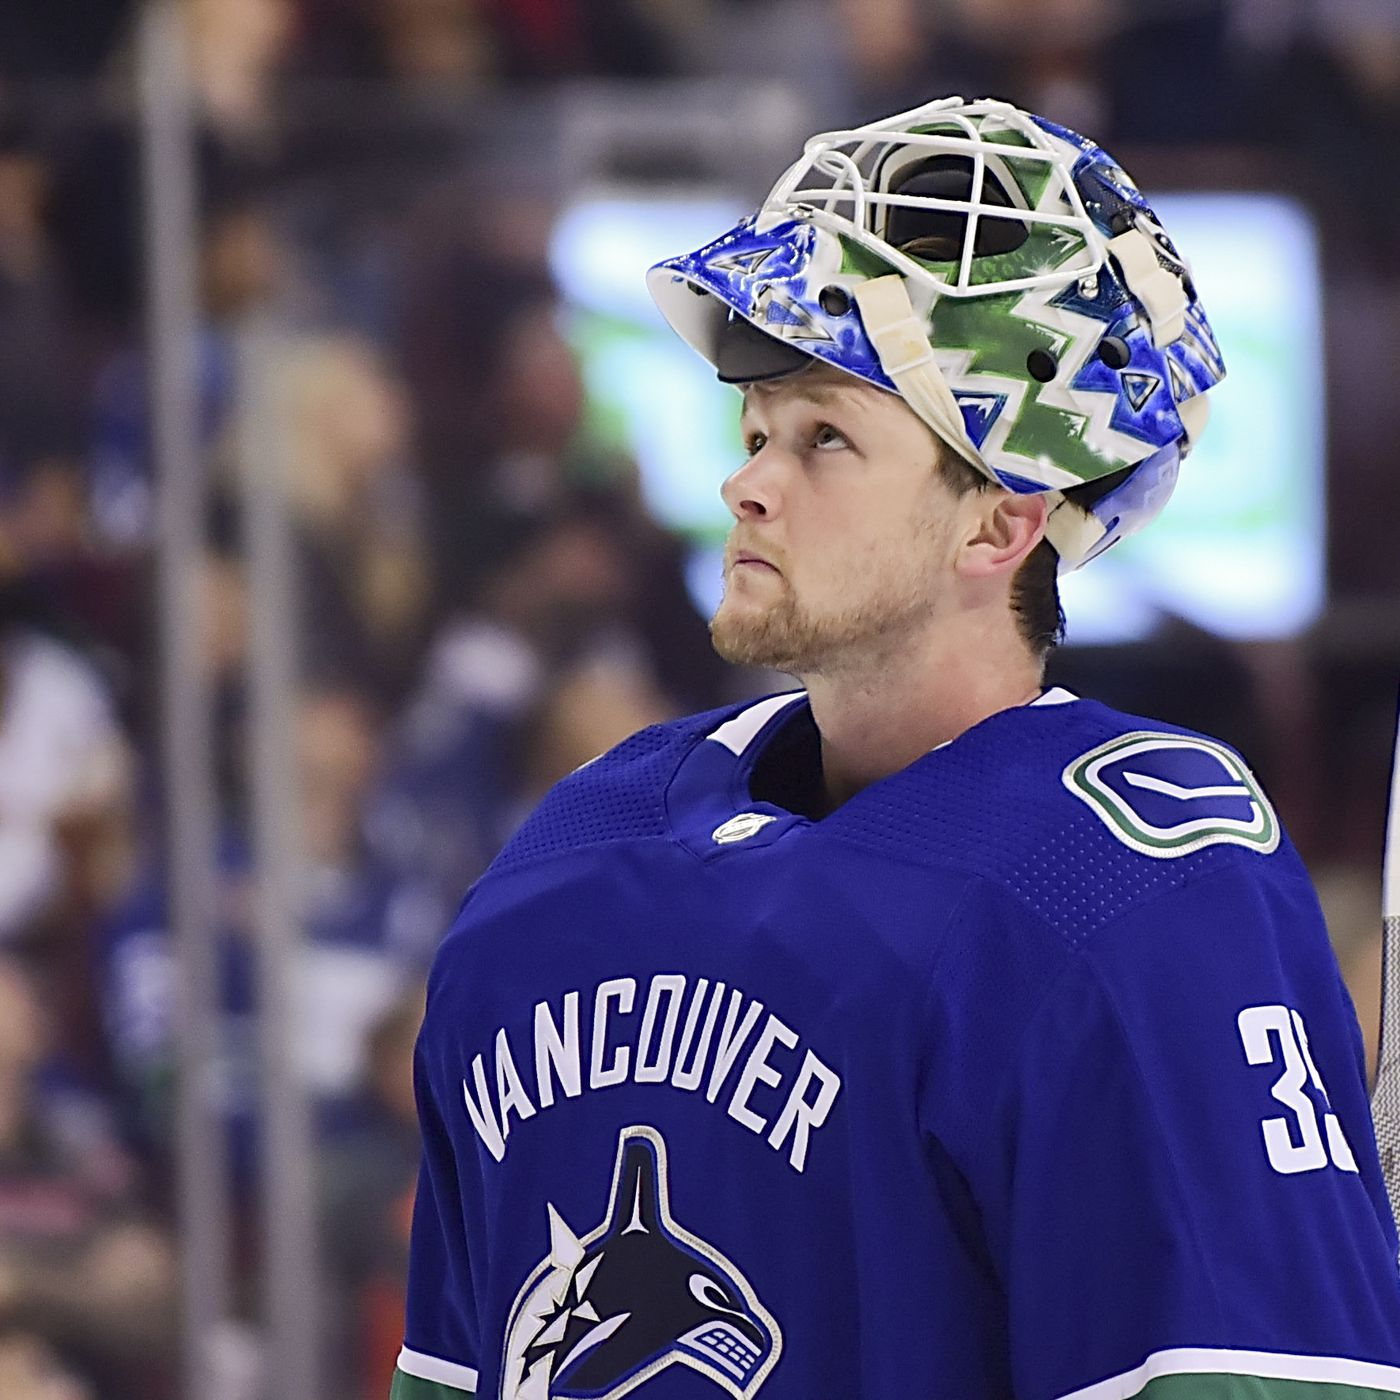 """a53695efa Trade of Anders Nilsson signals """"Demko Time"""" in Vancouver - Nucks ..."""